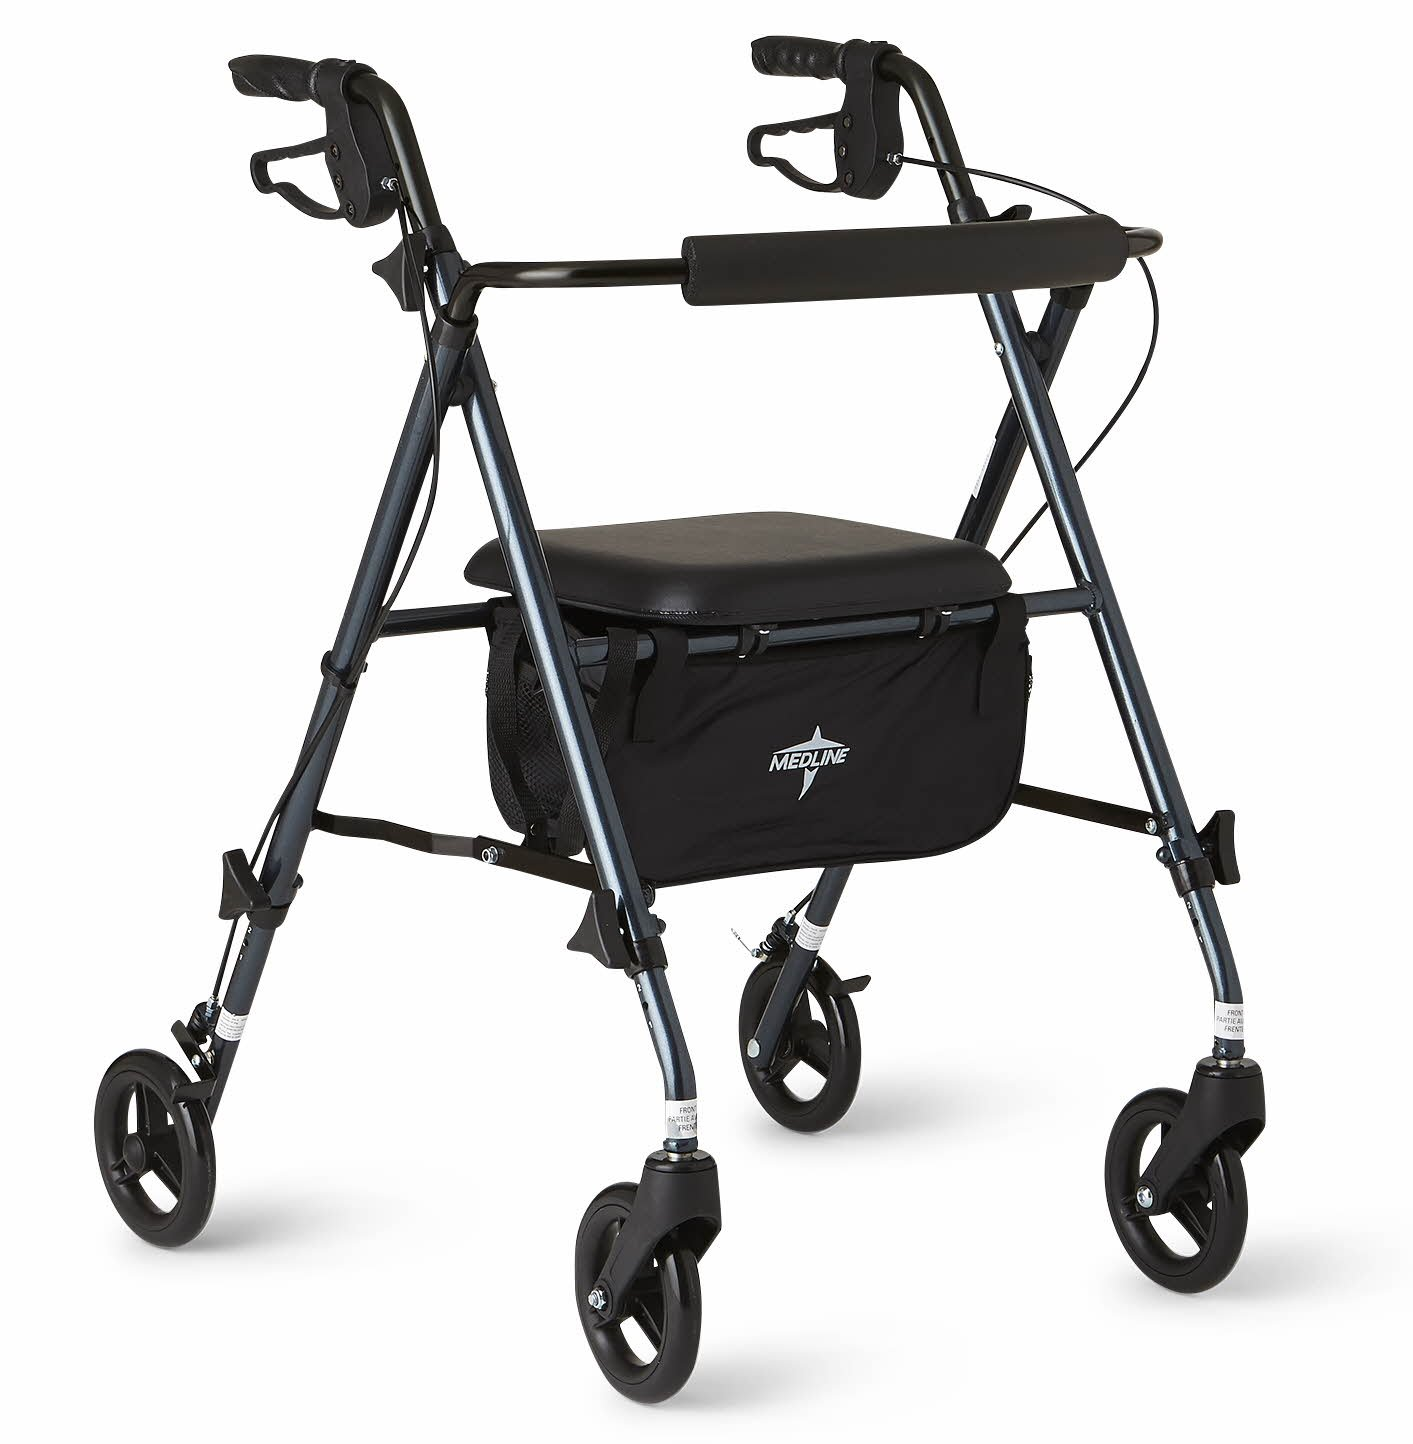 Medline Freedom Lightweight Folding Aluminum Rollator Walker with 6'' Wheels, Adjustable Arms and Seat, Smoky Blue